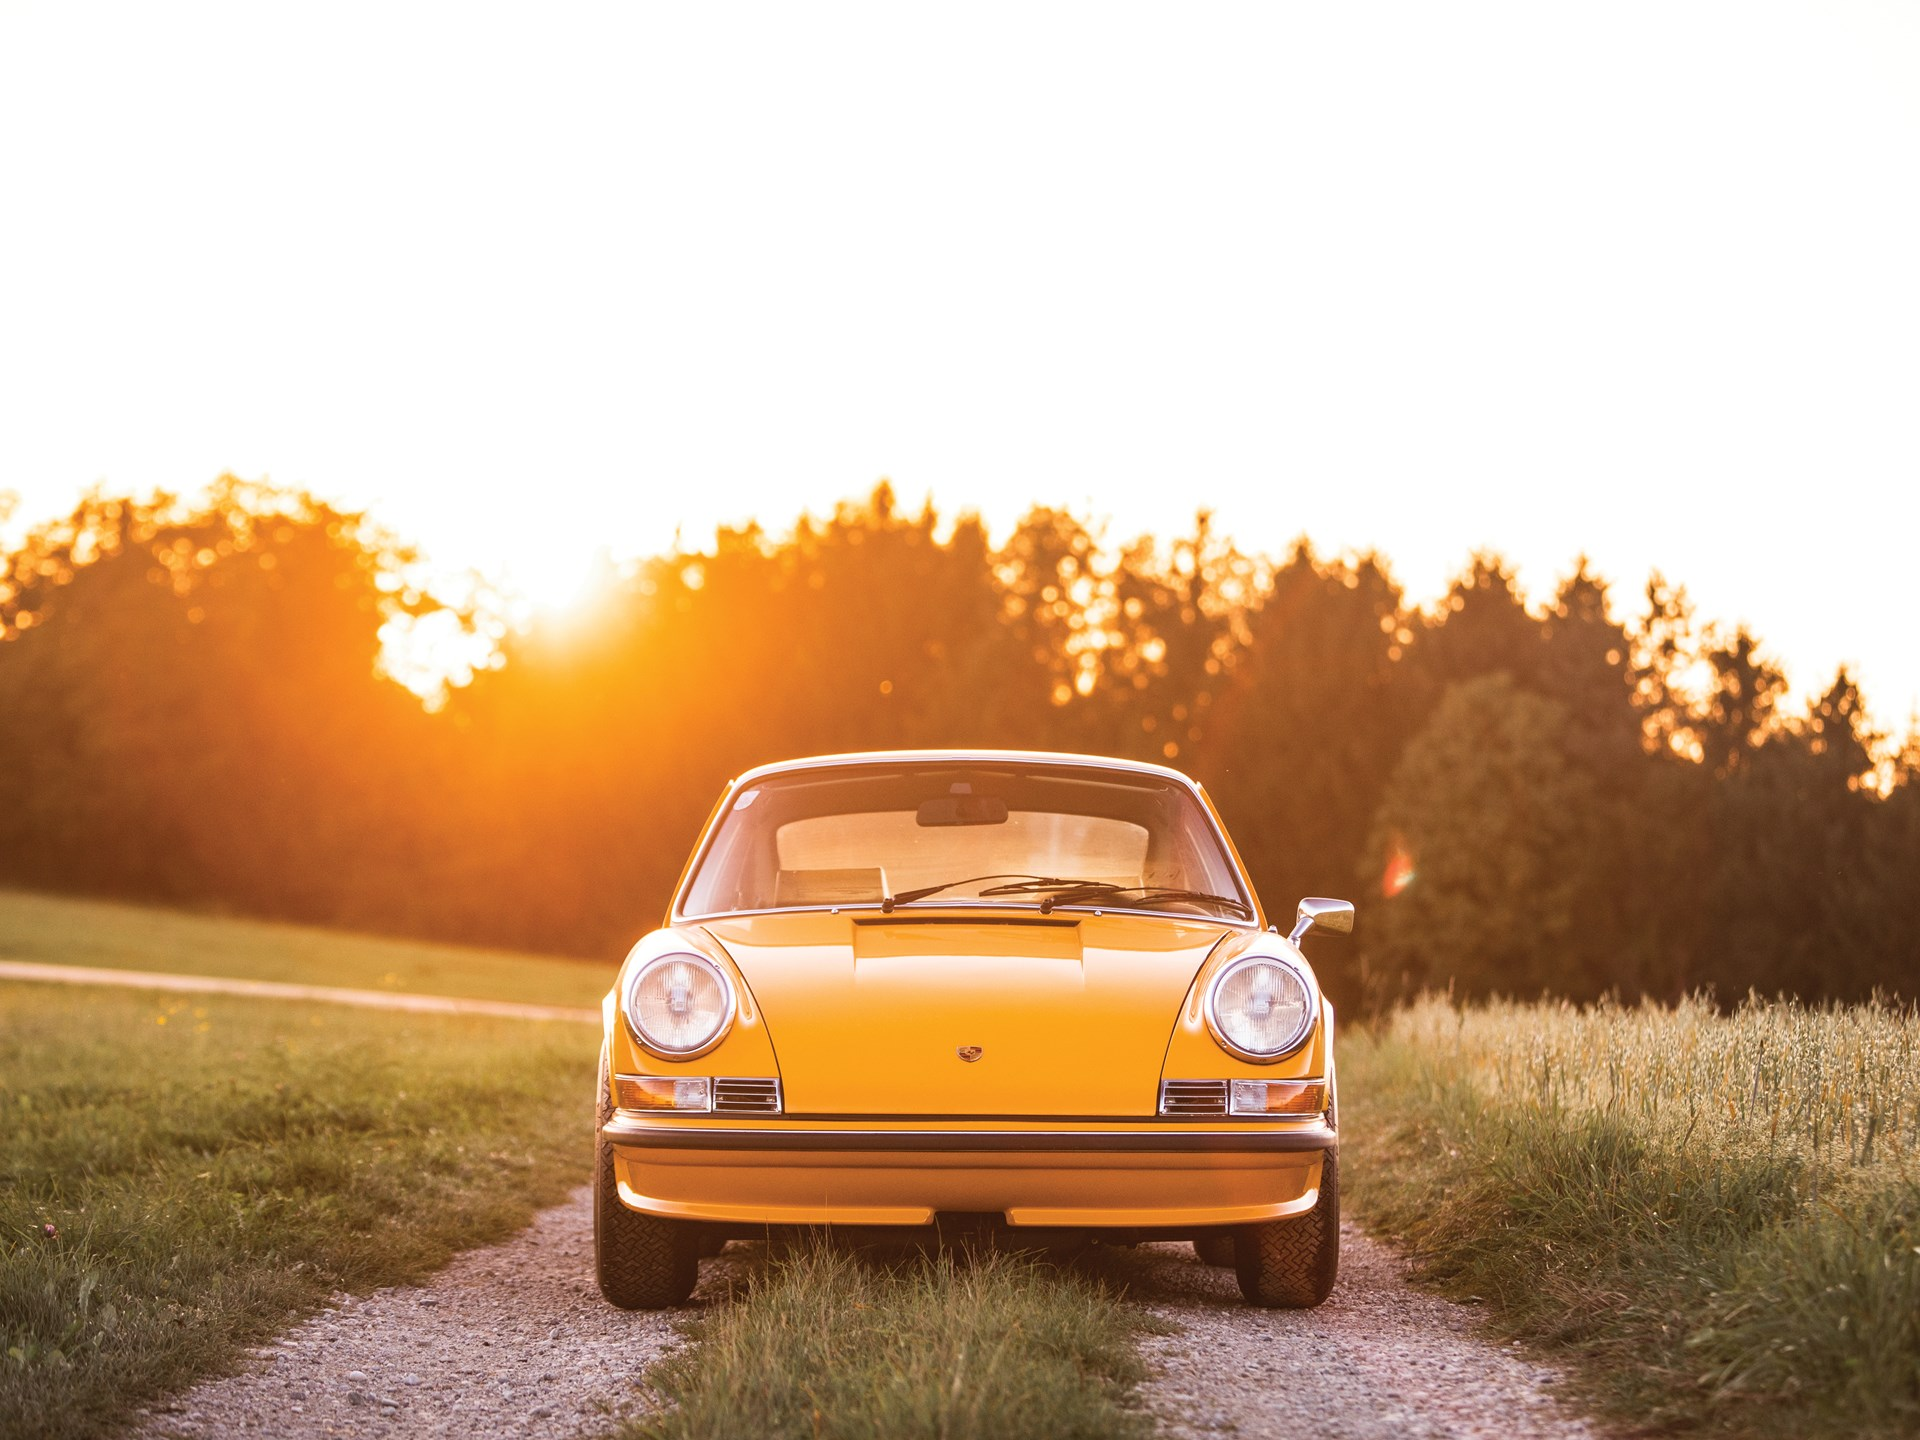 1973 Porsche 911 Carrera RS 2.7 Prototype